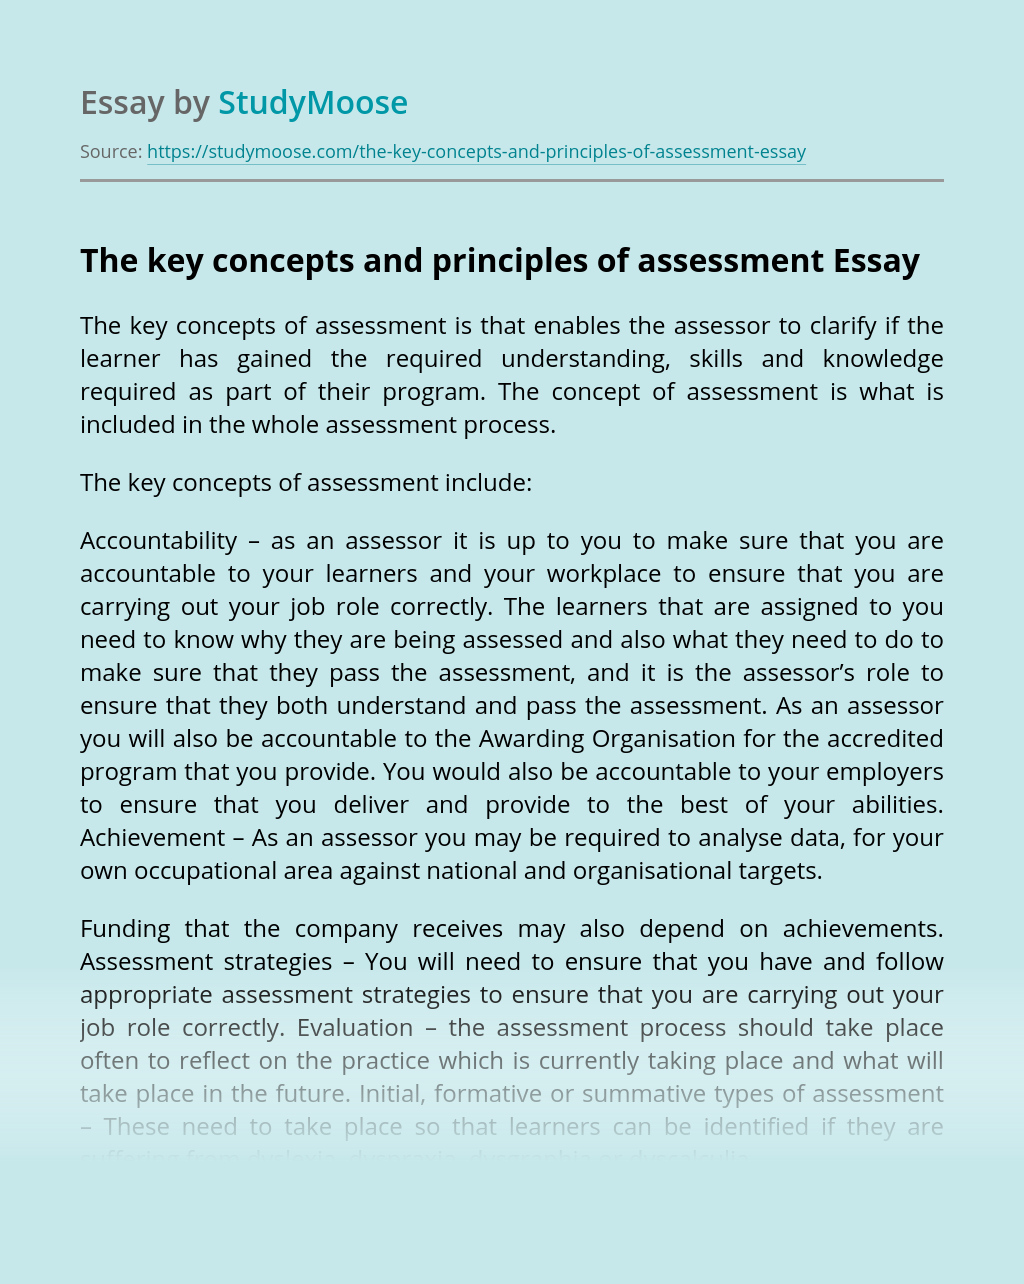 The Key Concepts and Principles of Assessment